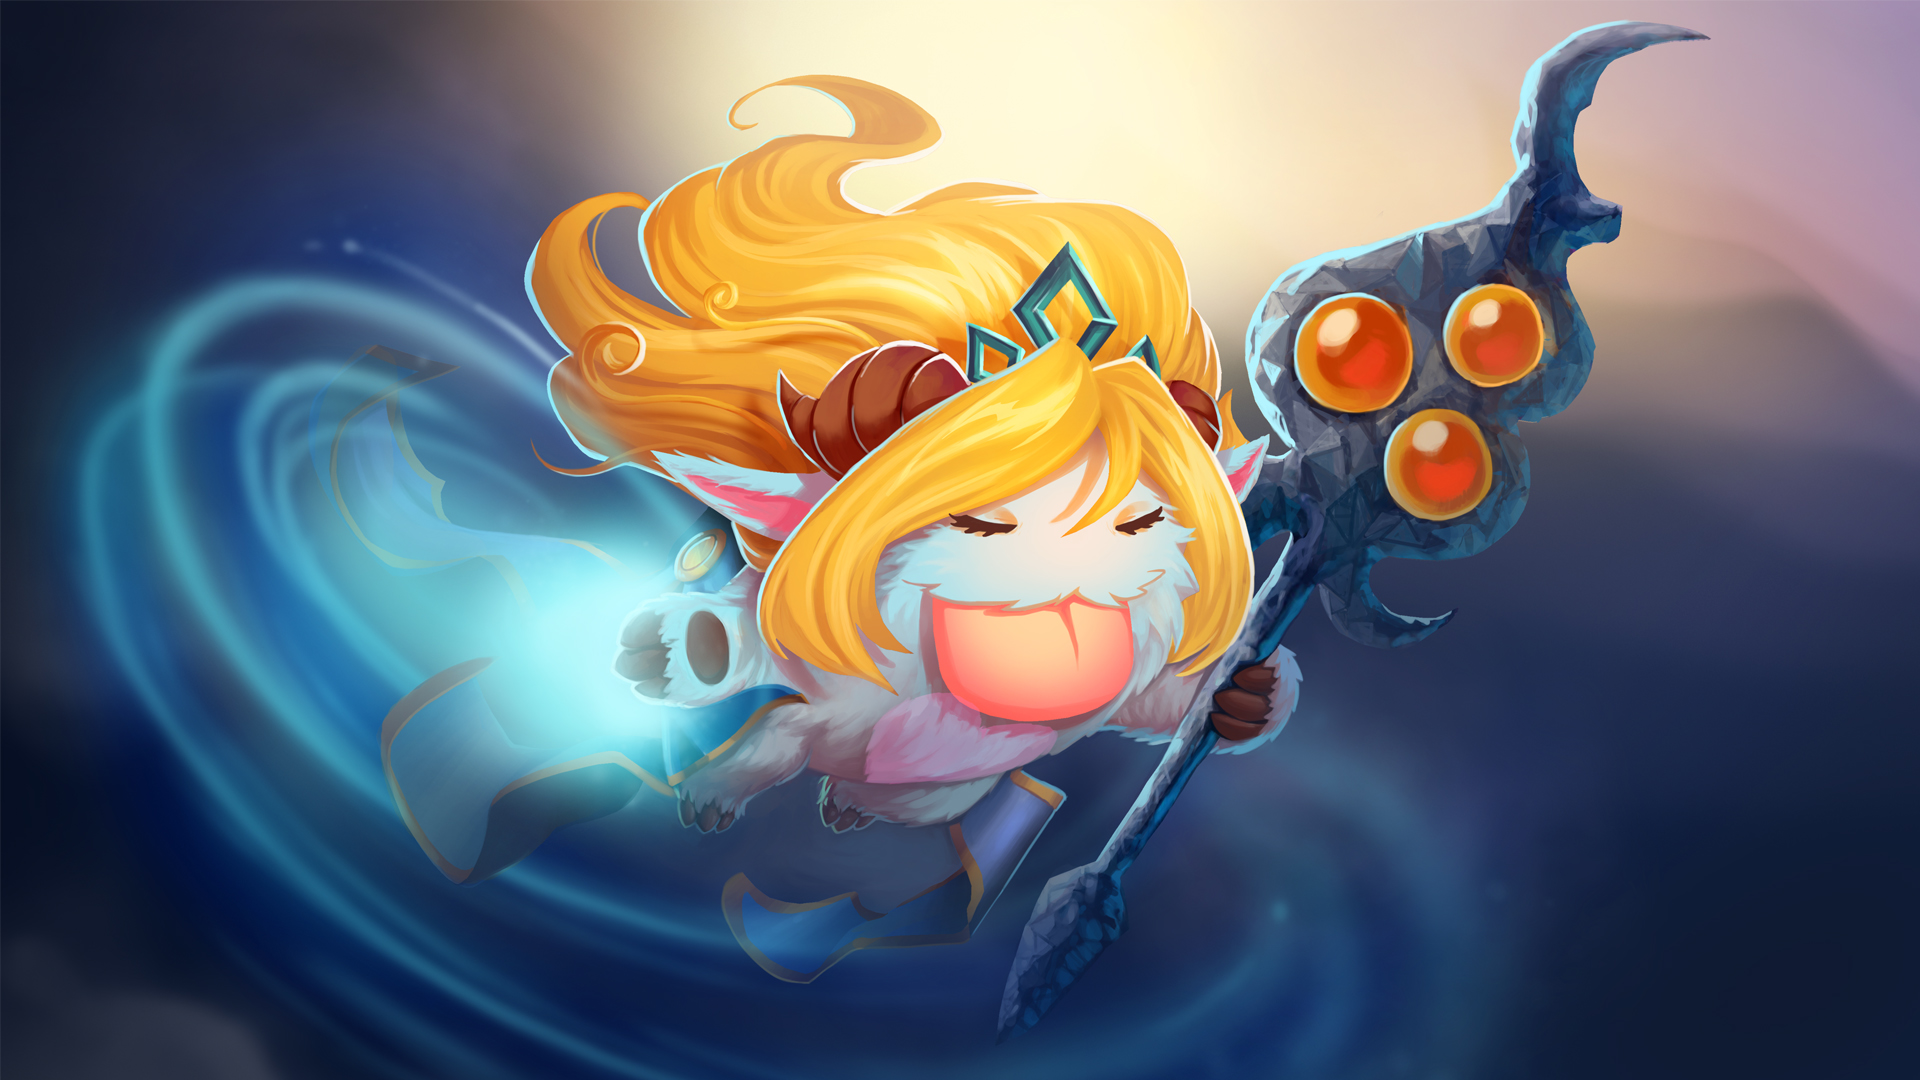 Janna Poro - Wallpapers HD